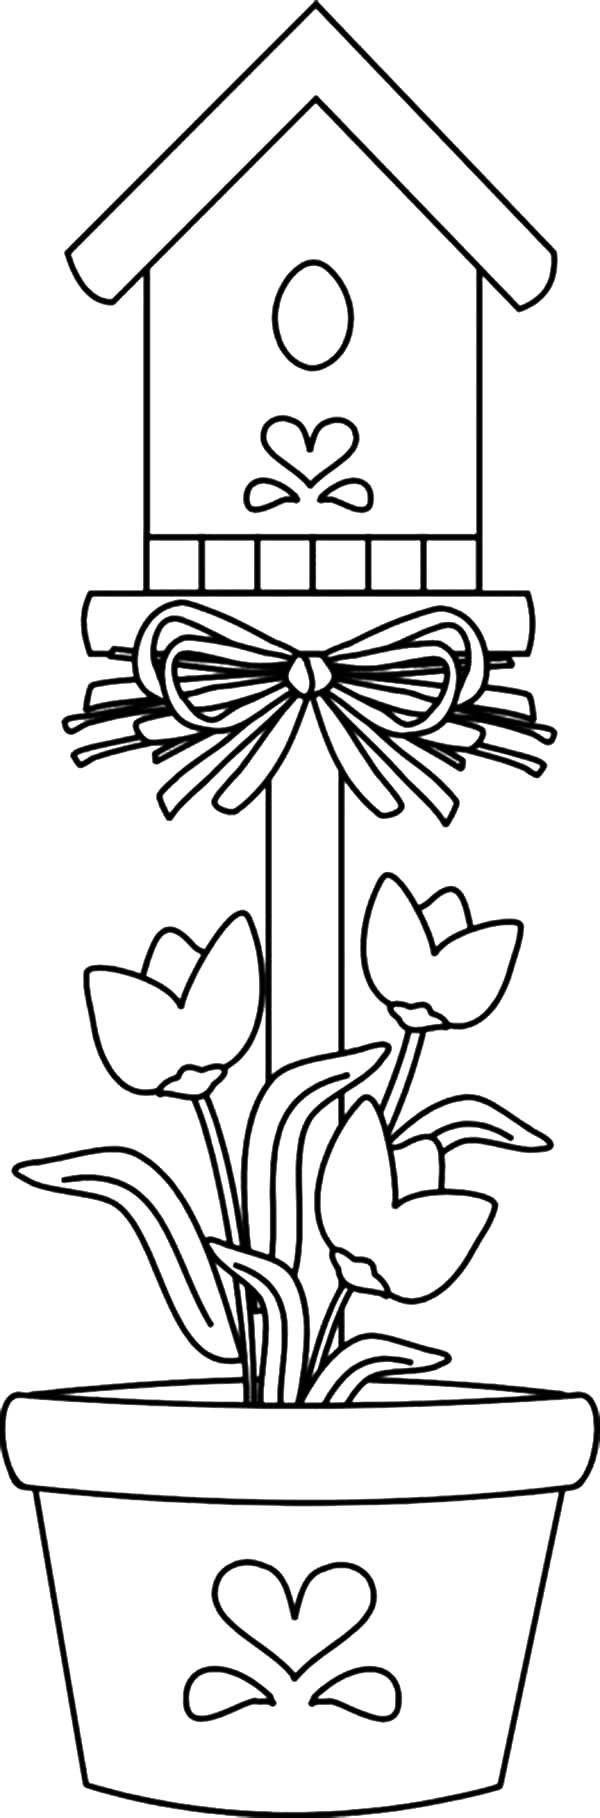 17 best alessia images on pinterest disney coloring pages